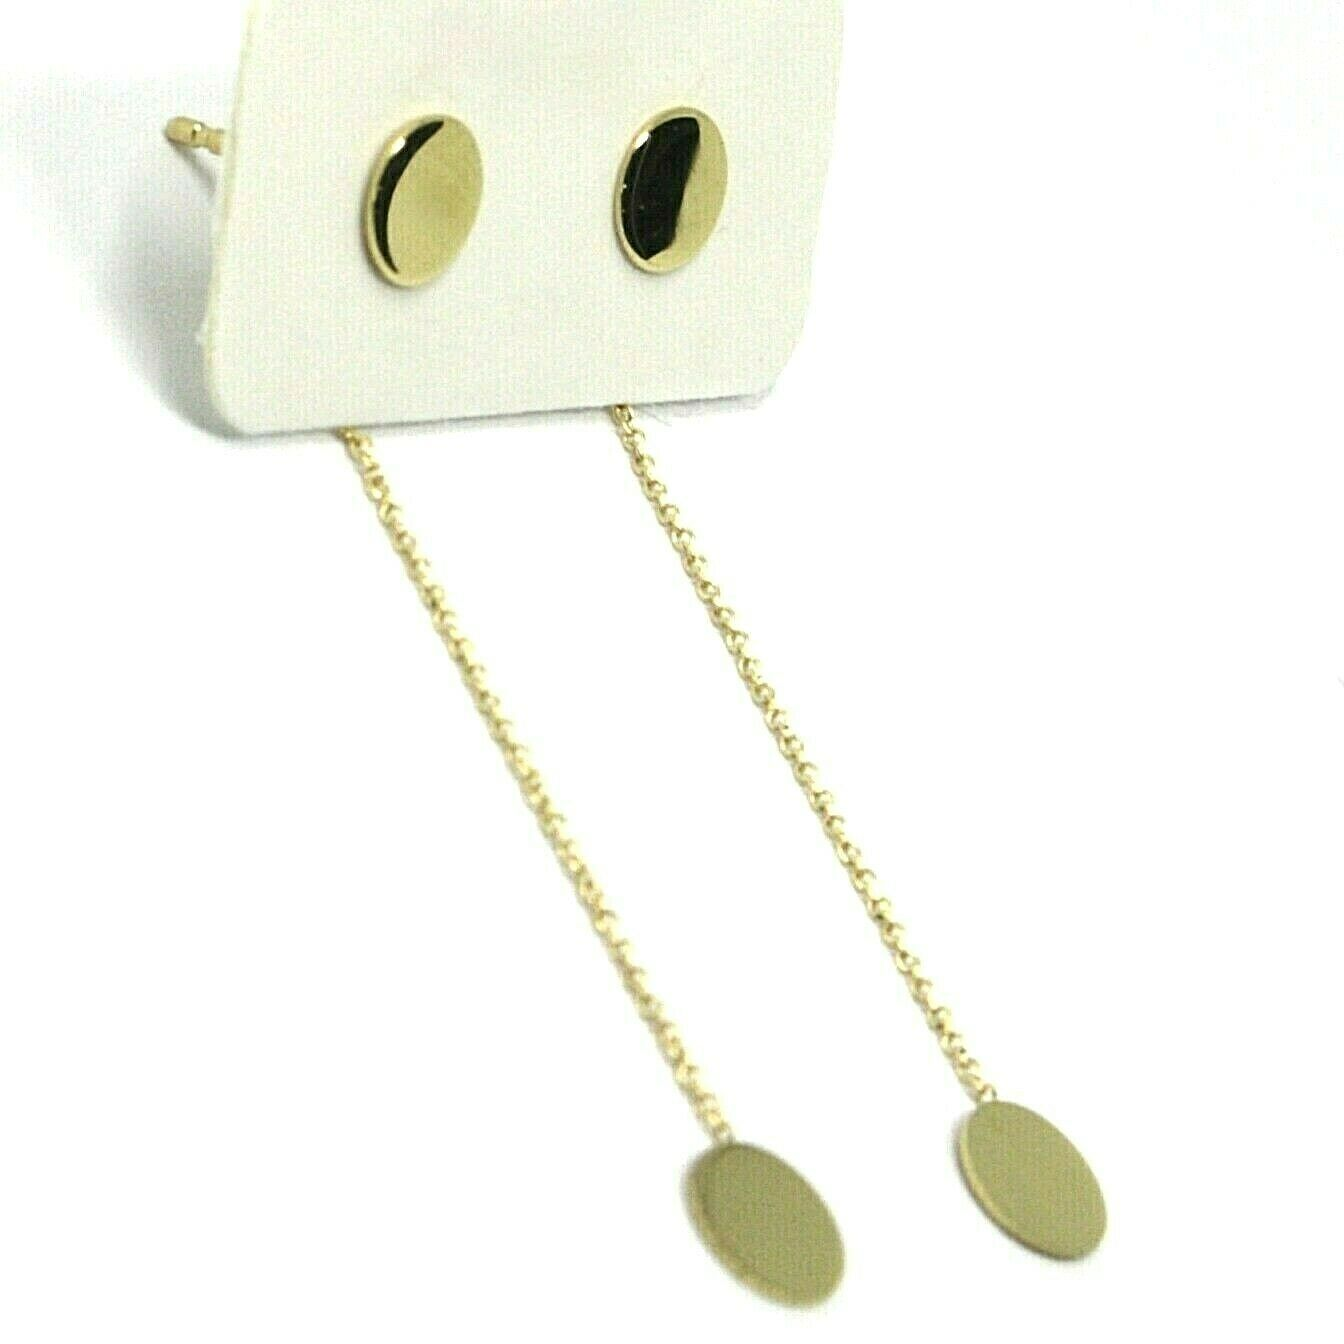 18K YELLOW GOLD PENDANT EARRINGS FLAT DOUBLE DISC, SHINY, SMOOTH, ROLO CHAIN